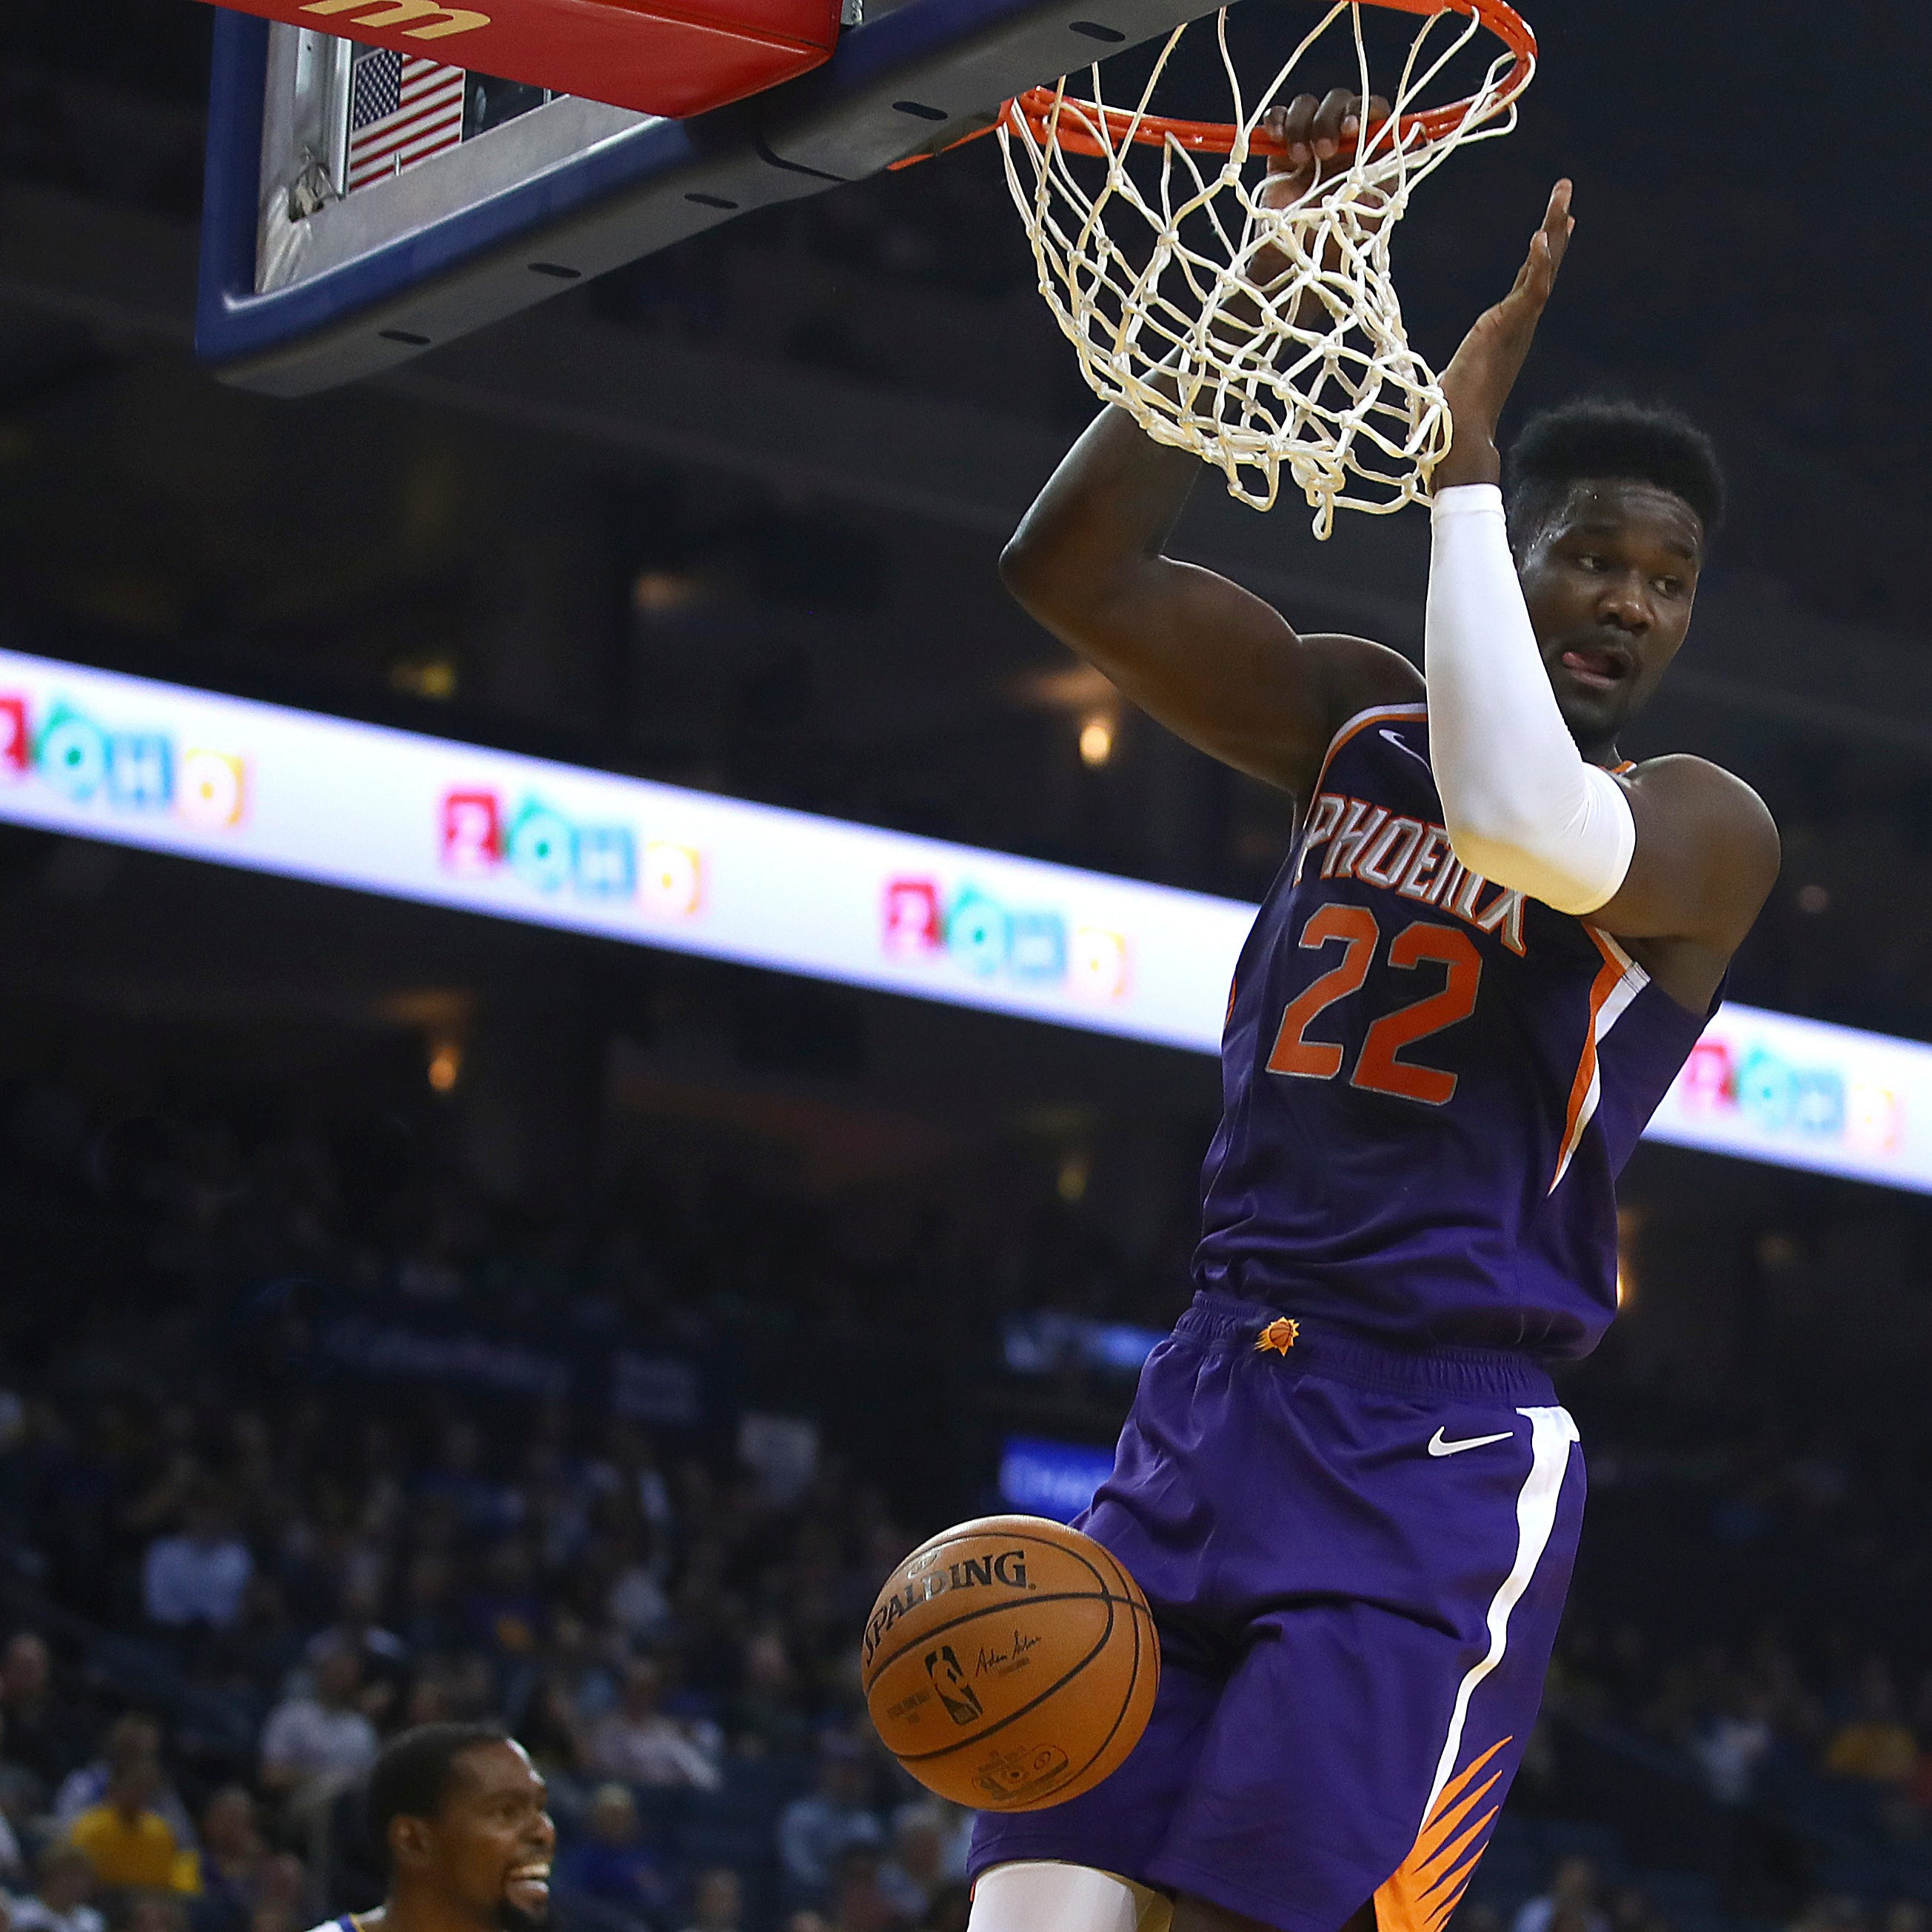 There's a good chance this is the year the Phoenix Suns finally get back on path to glory